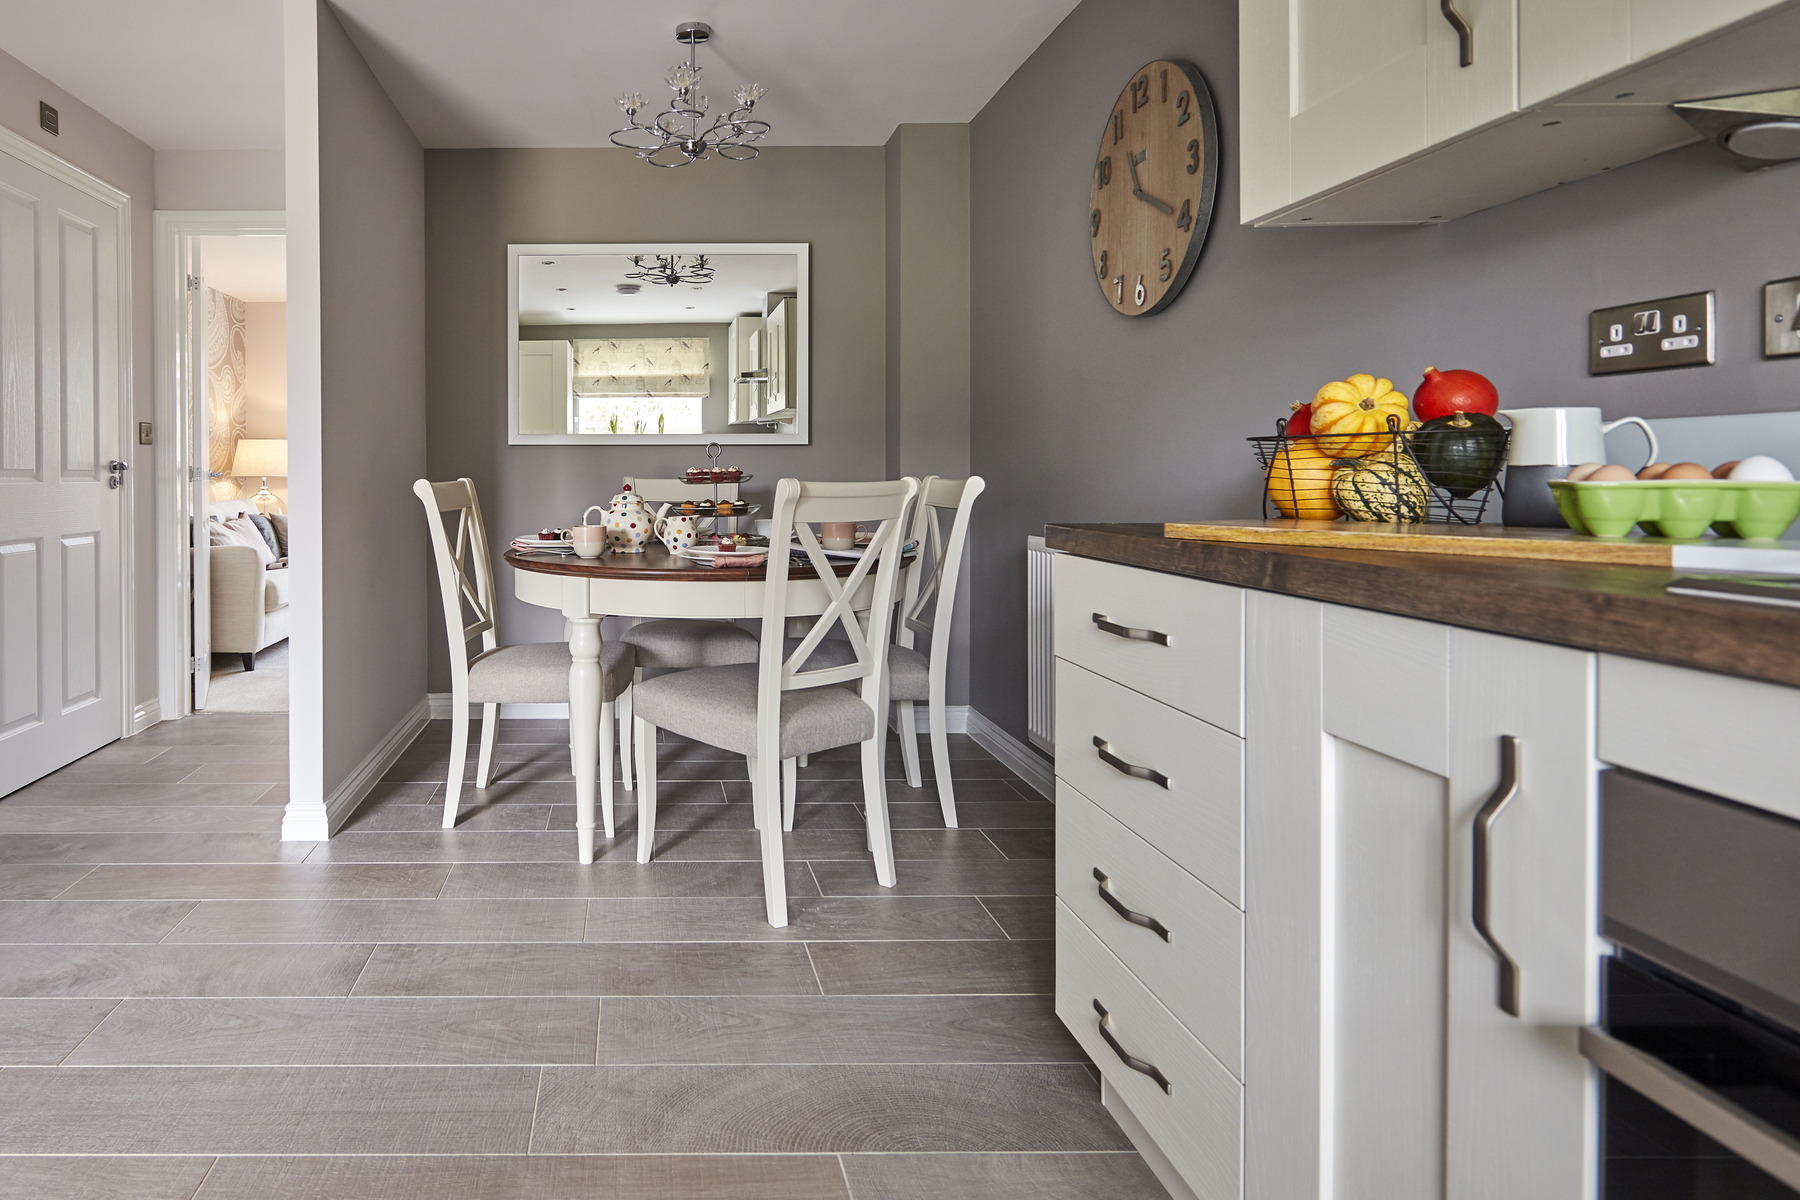 TW Mids_Lilley Meadow_Southam_PB35 G_Alton G_Kitchen_Dining